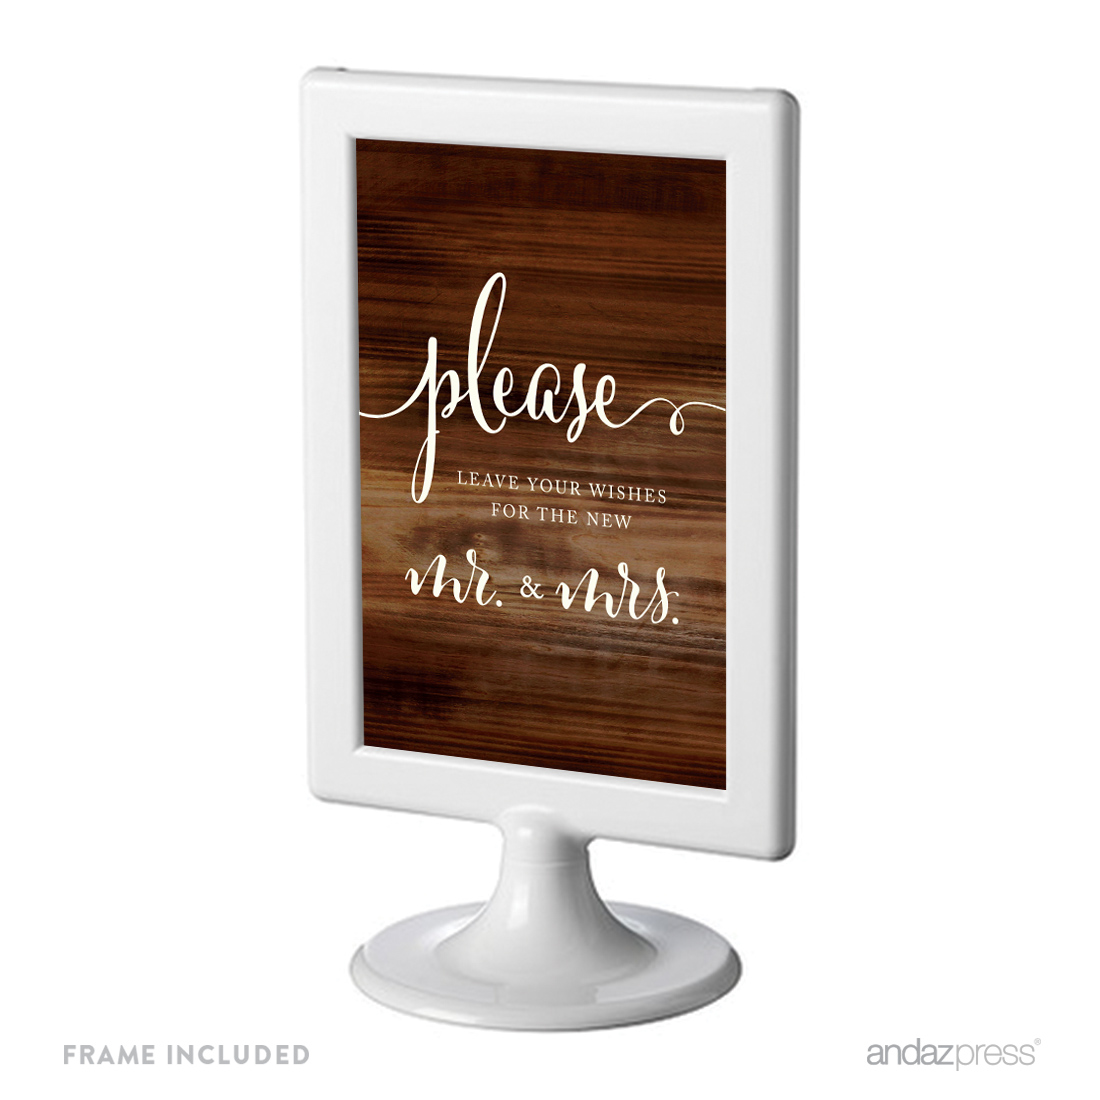 Leave Your Wishes For New Mr. & Mrs. Framed Rustic Wood Wedding Party Signs